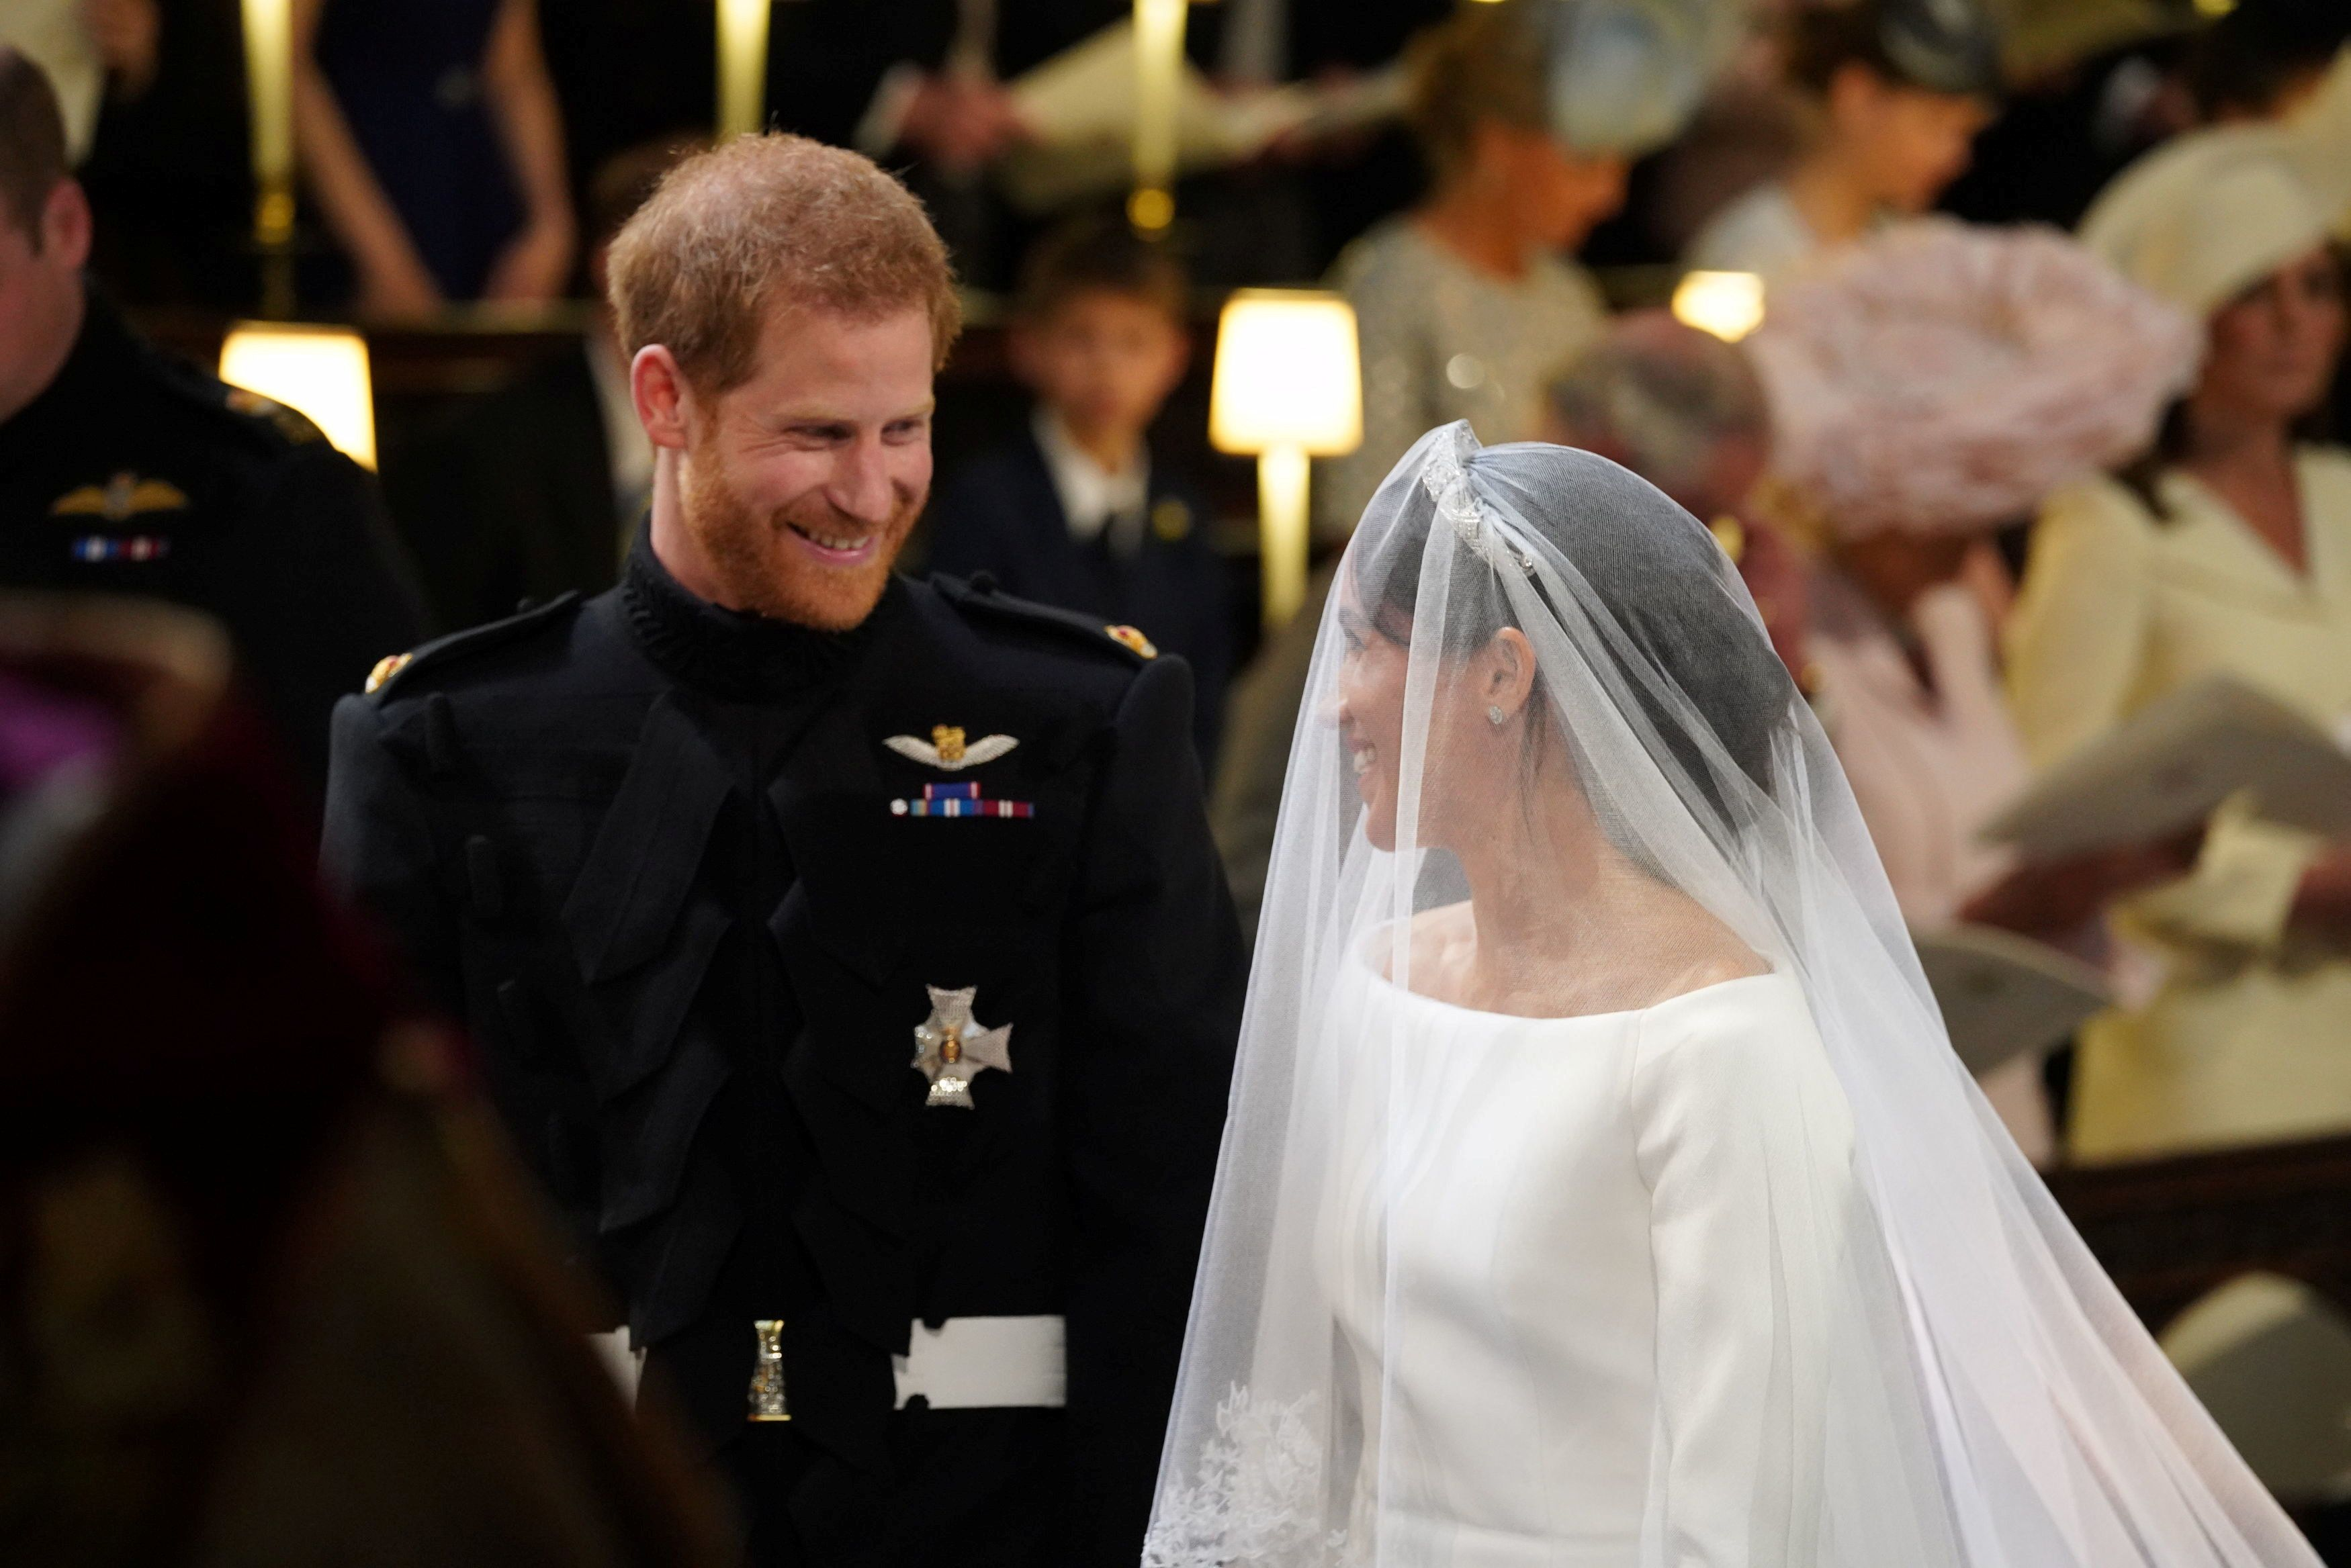 Prince Harry and Meghan Markle at their wedding at St. George's Chapel at Windsor Castle on May 19, 2018.